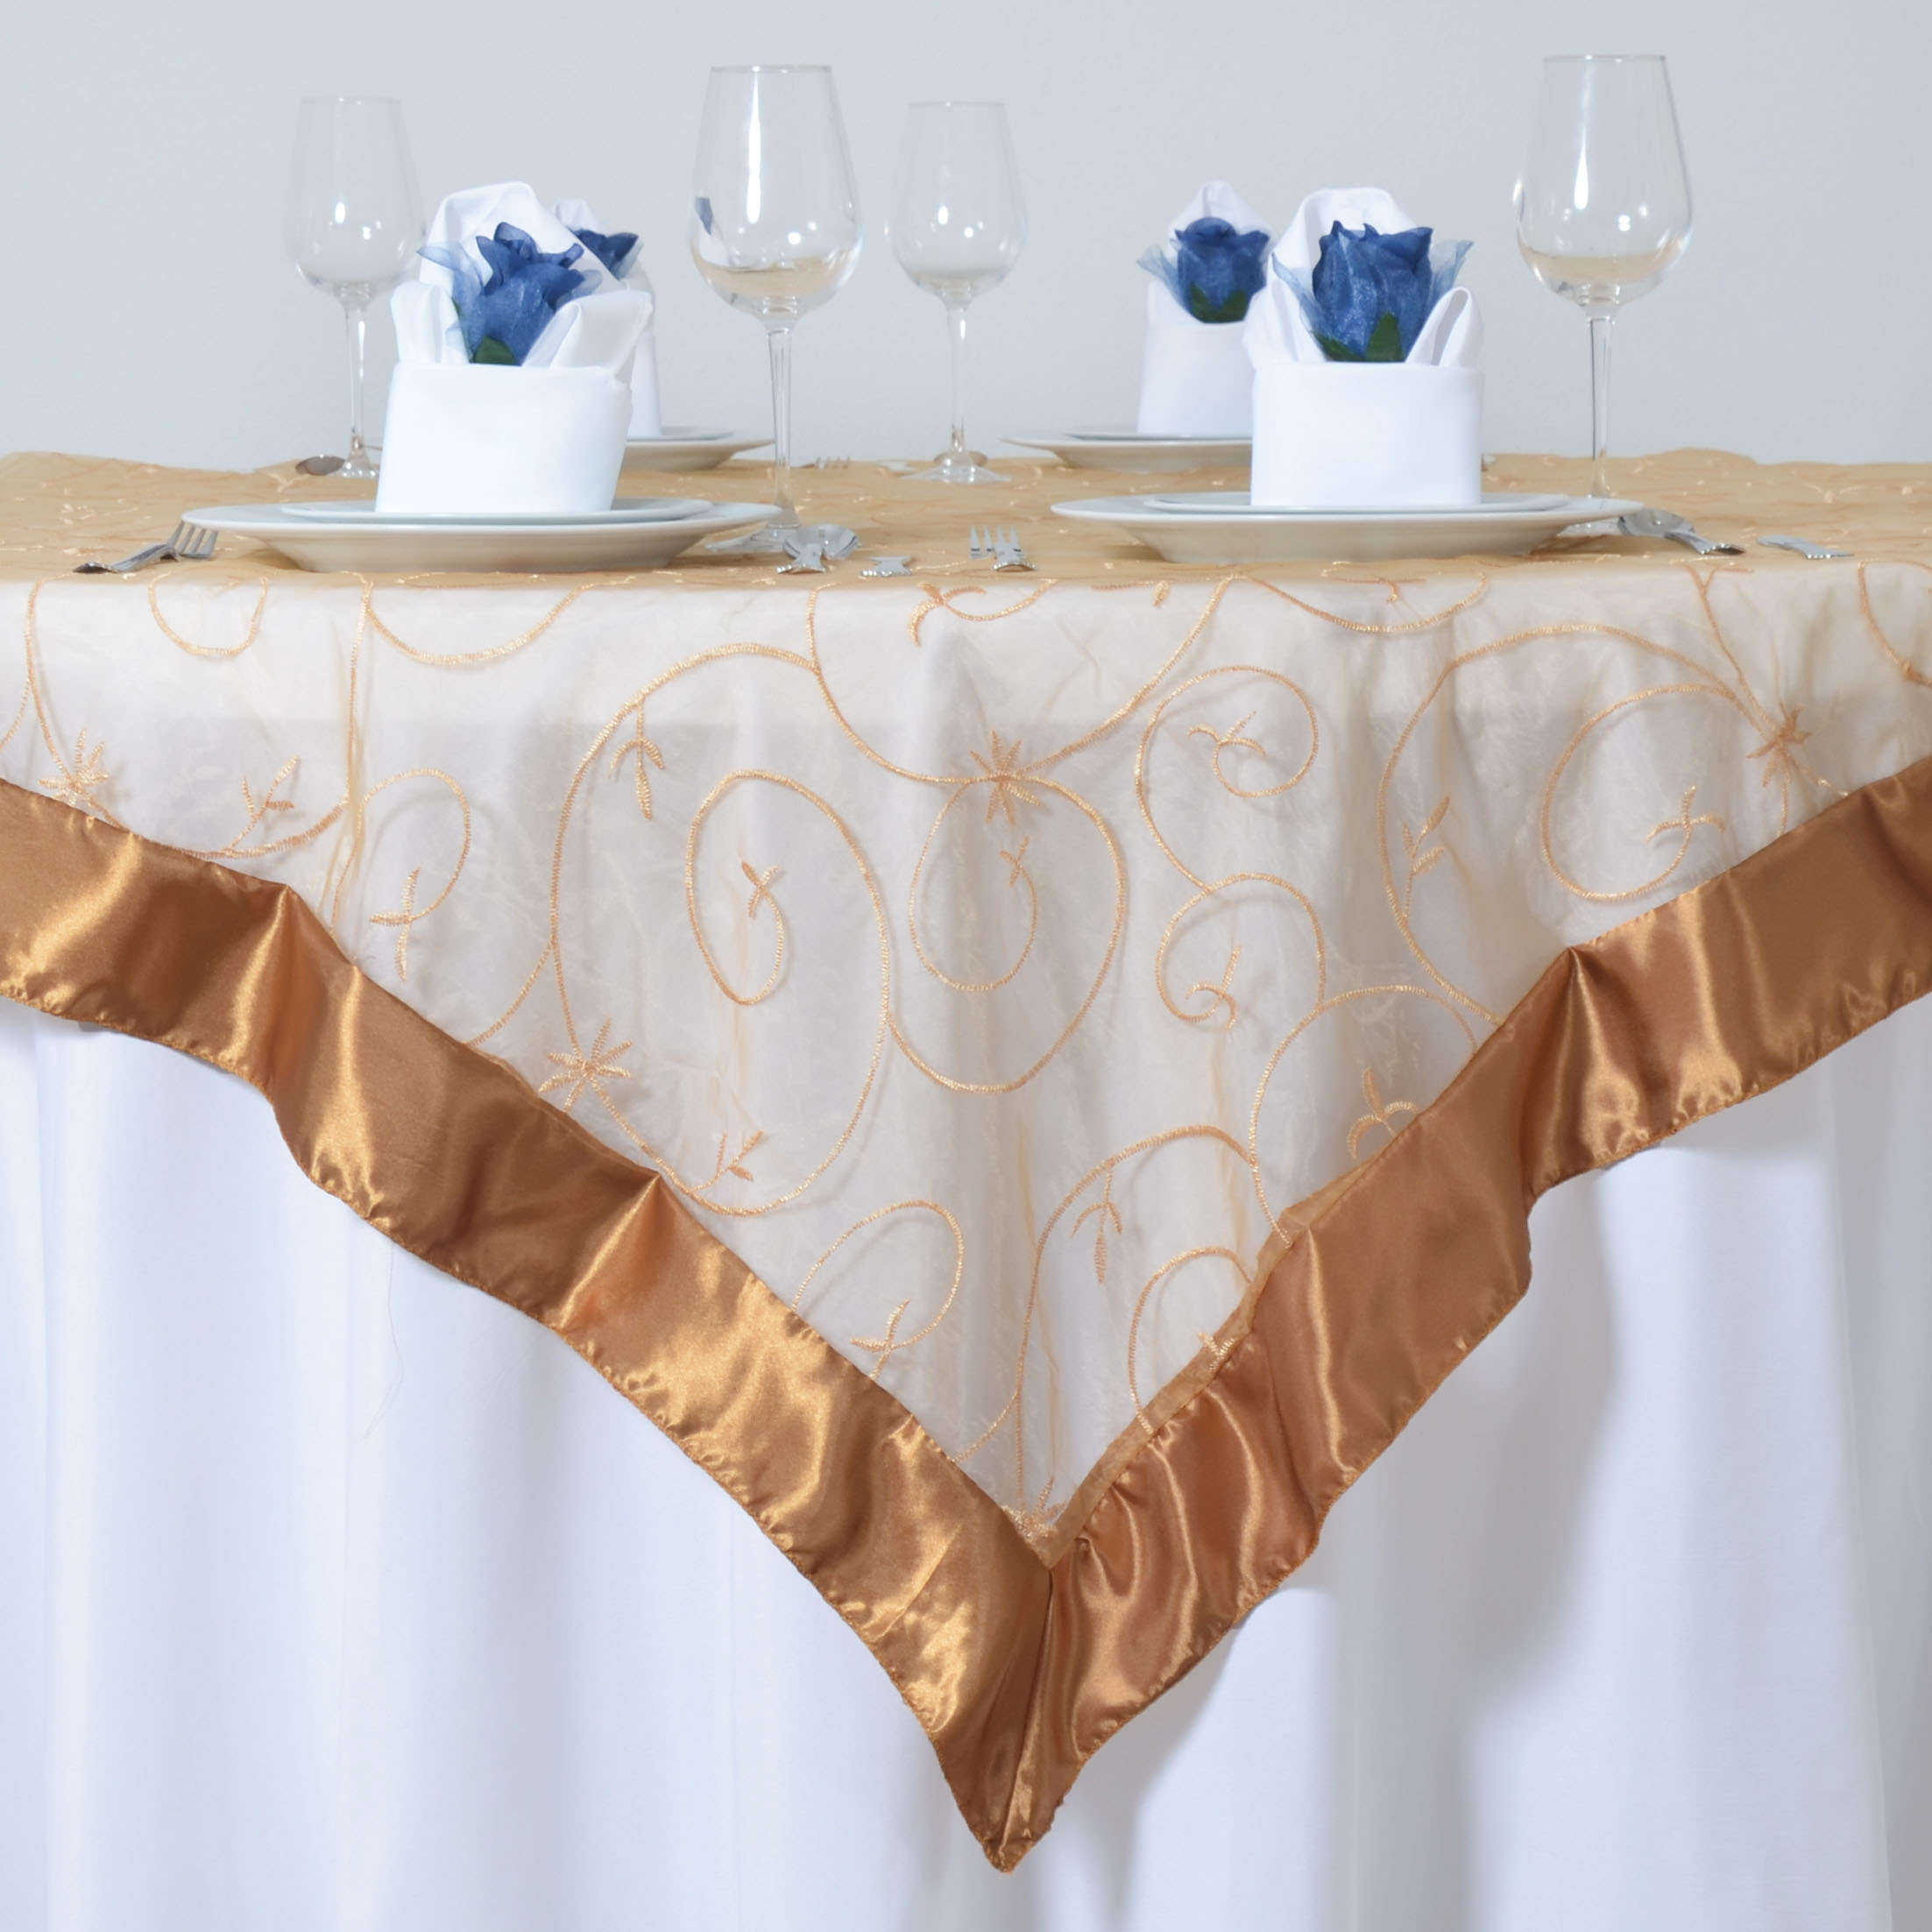 10 Embroidered Organza 85x85 Square Large Table Overlays Wedding